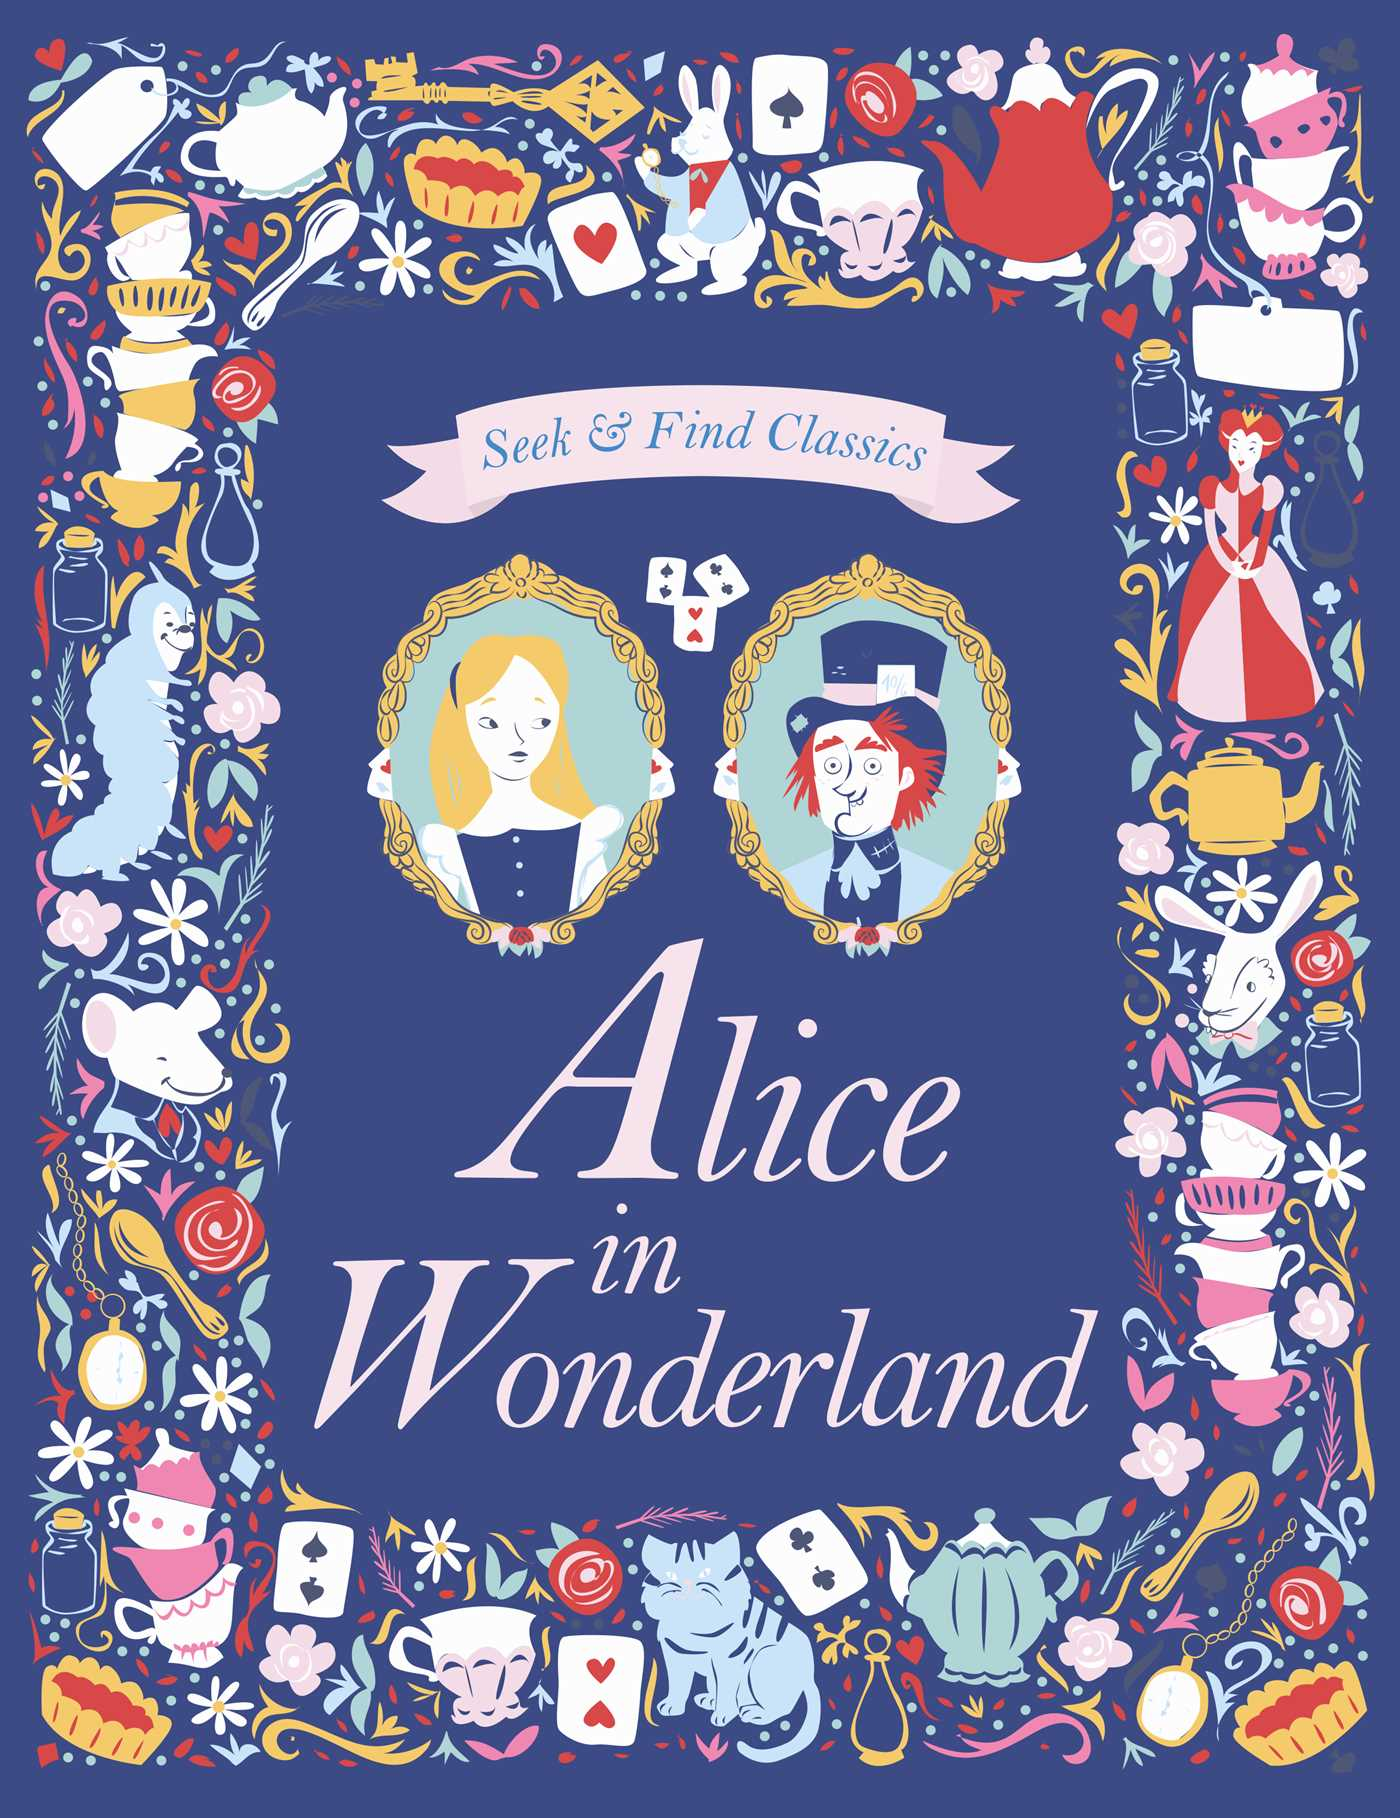 a review of lewis carrolls novel alice in wonderland Book review: alice in wonderland (alice's adventures in wonderland book #1) by lewis carroll 1420  you'll love lewis carroll's alice in wonderland.